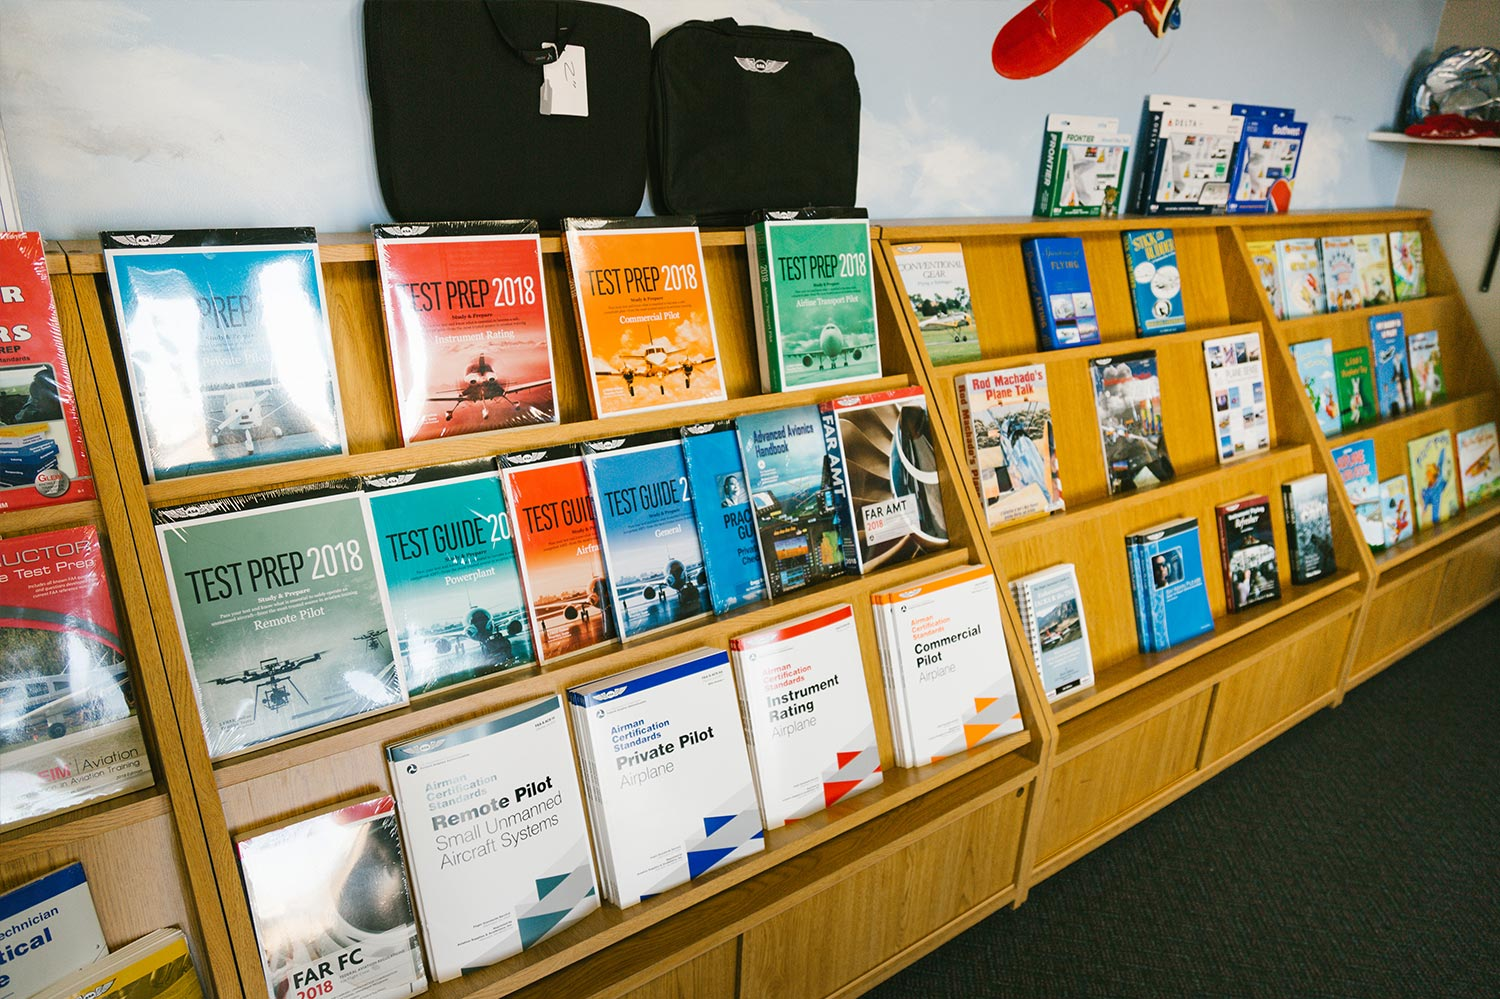 Blue-Skies-Flying-Services-Plane-Books-Test-Materials-Pilot-Airport-Lake-in-the-Hills